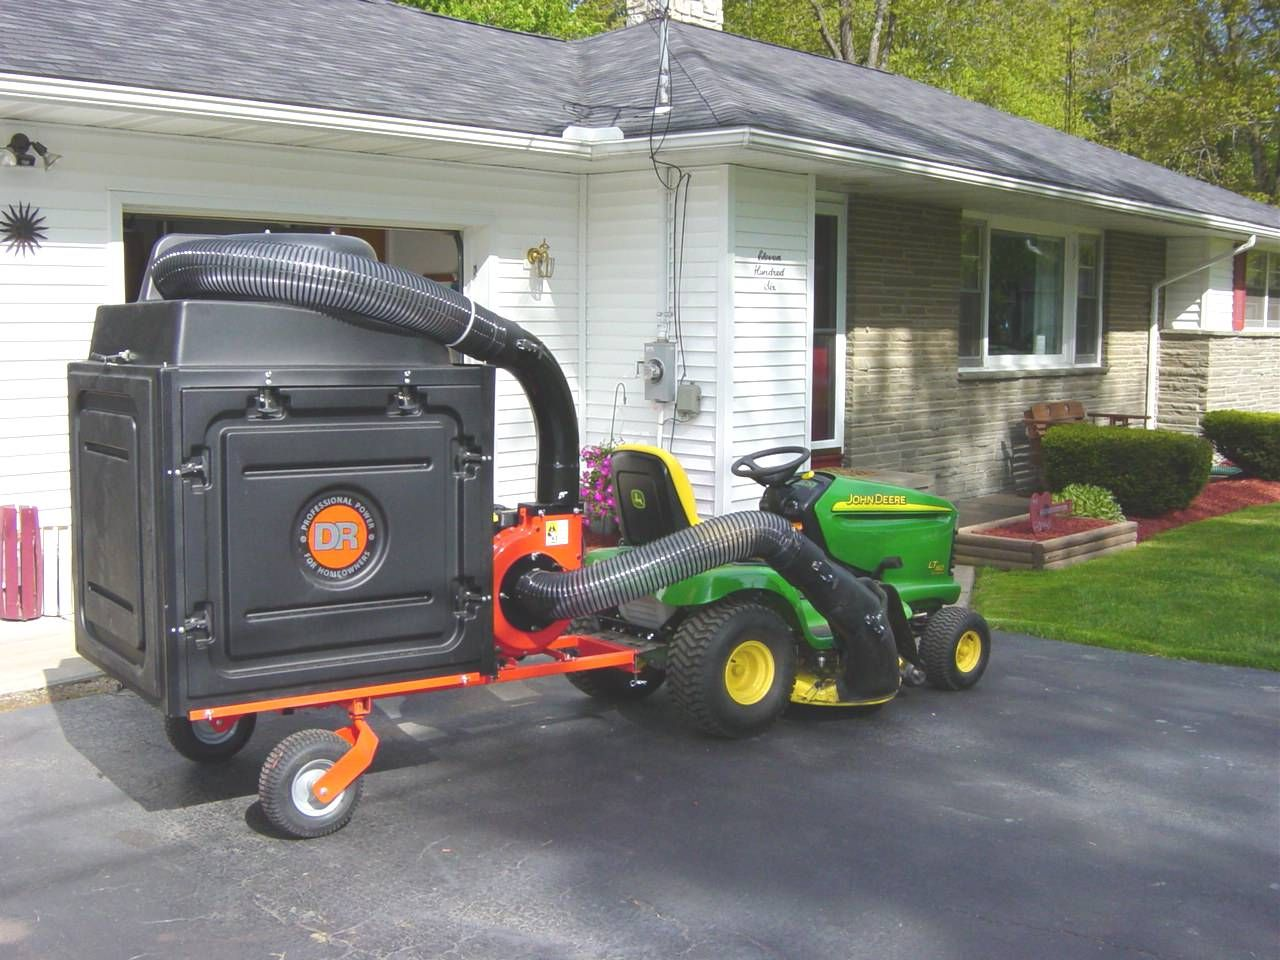 John Deere Lawn Vacuum The Amazing Dr Leaf And